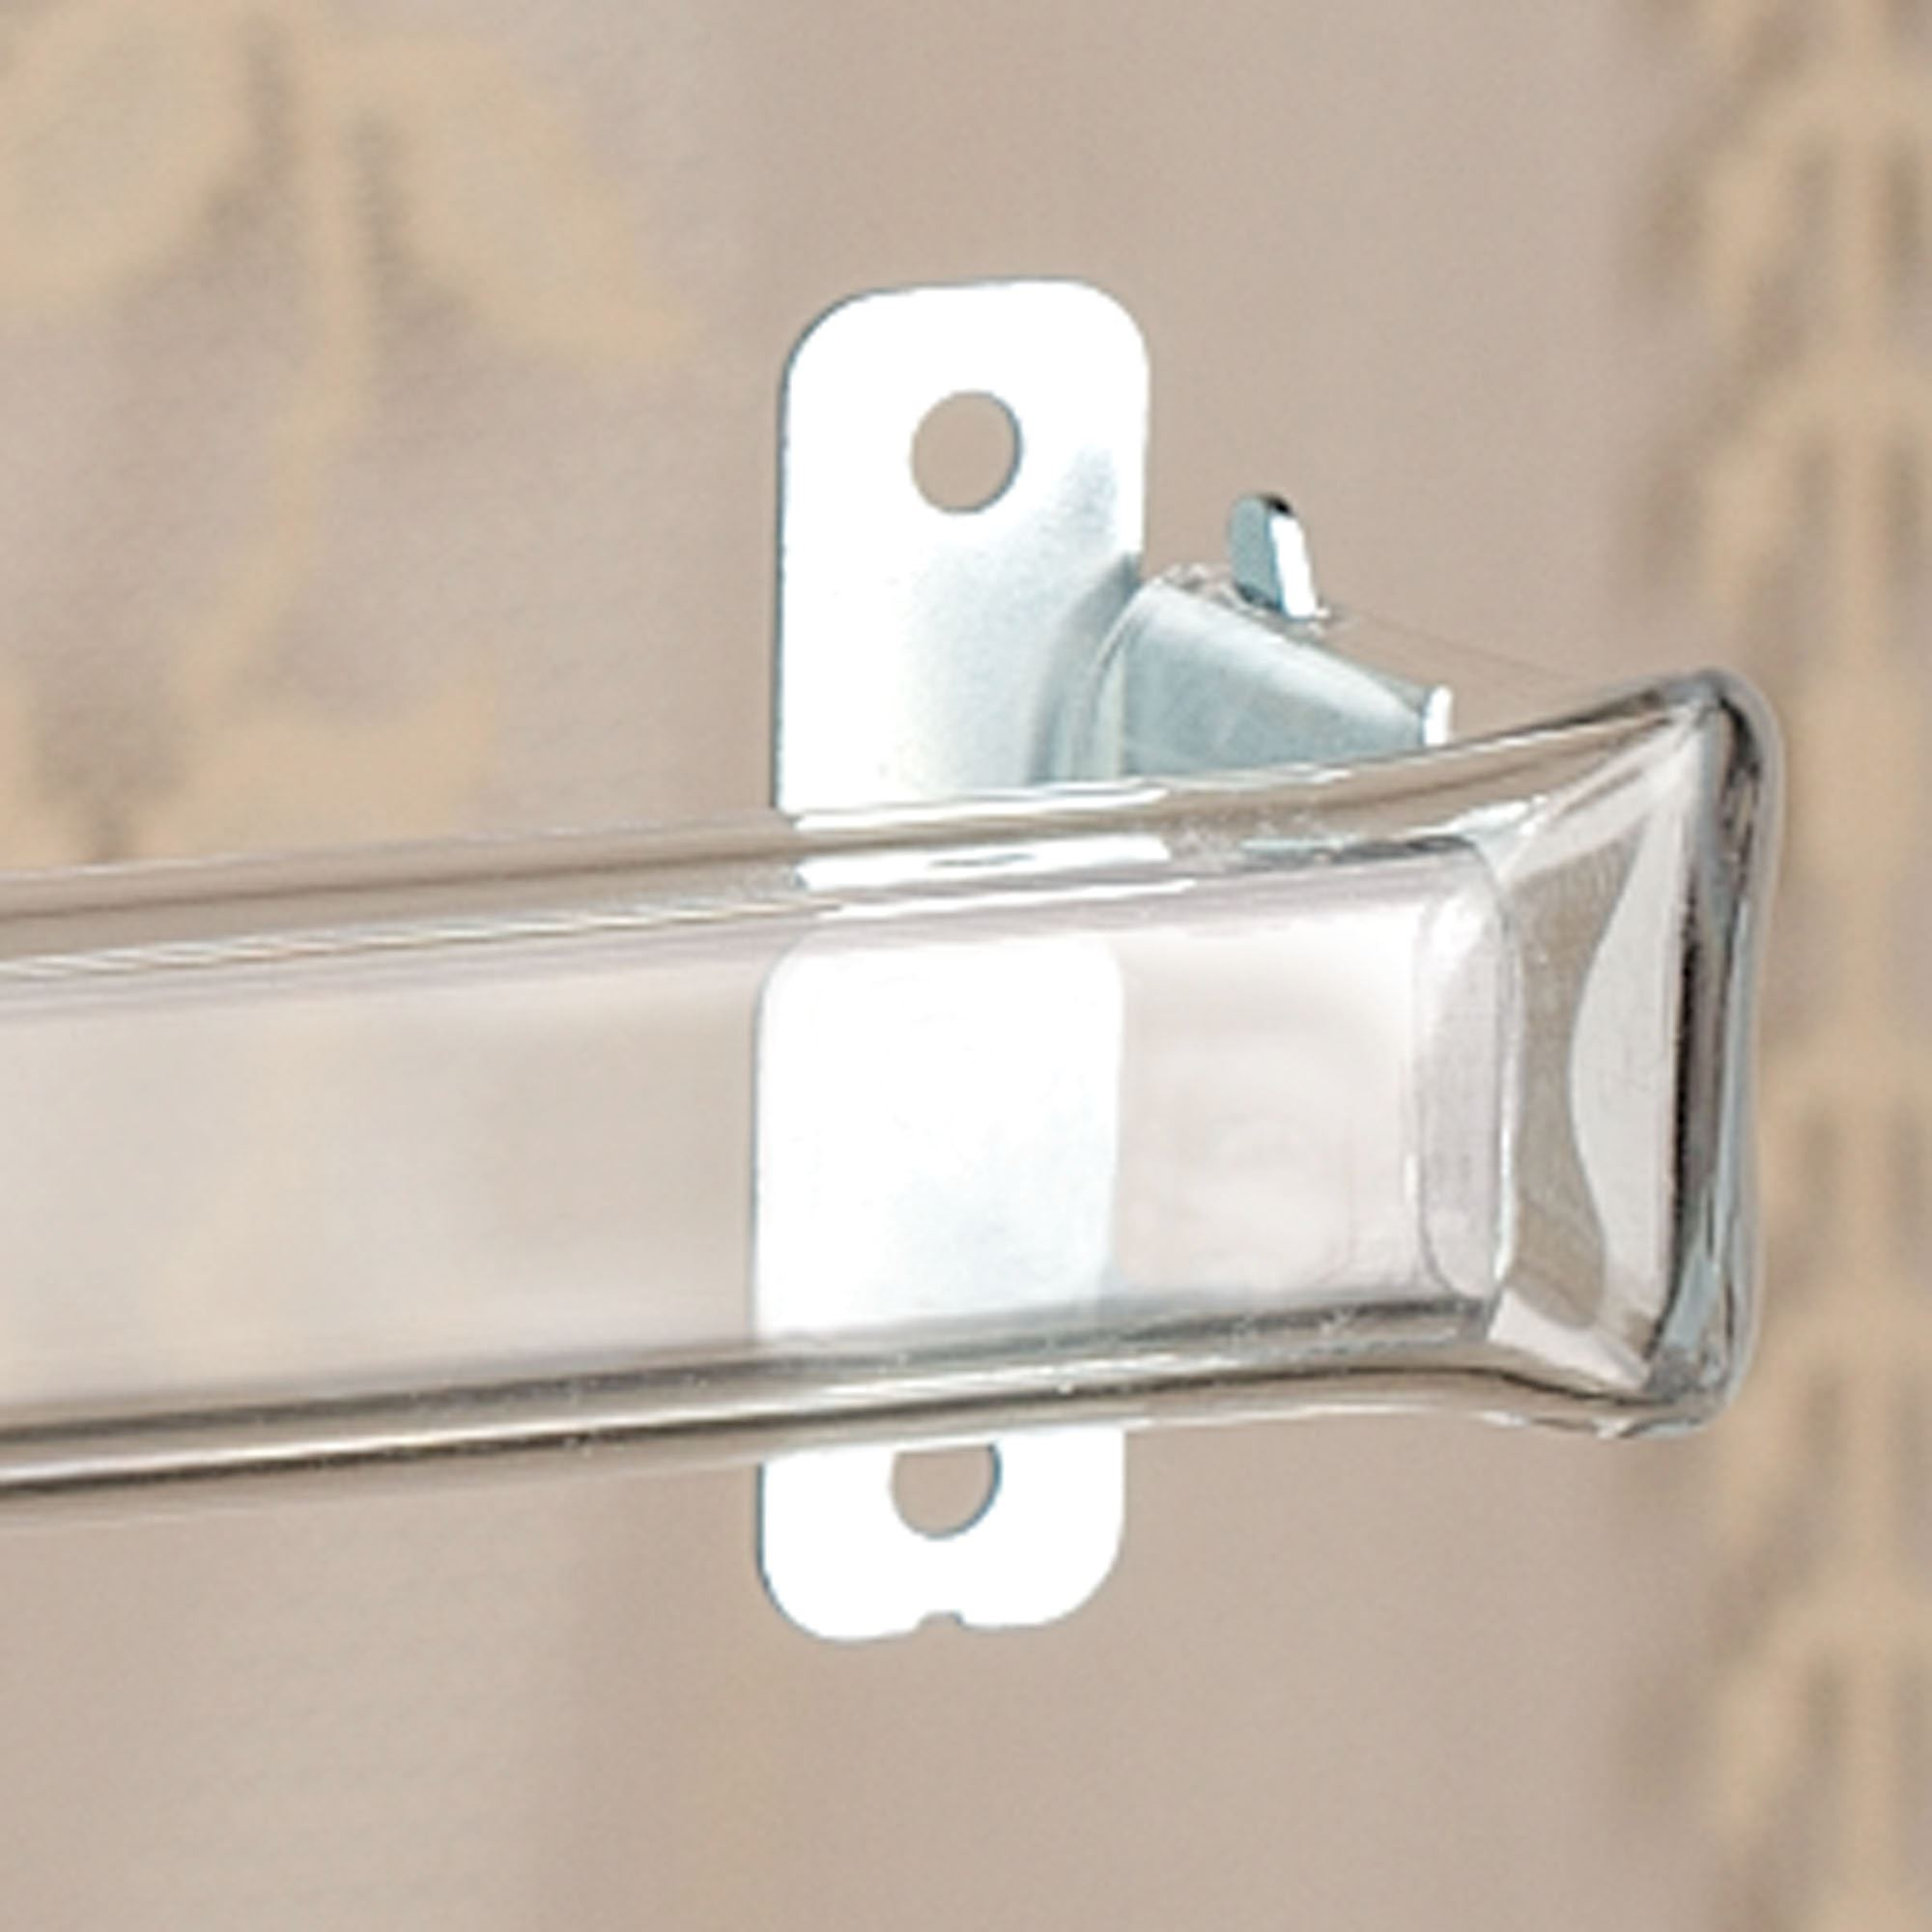 clear curtain rod for laces and sheers